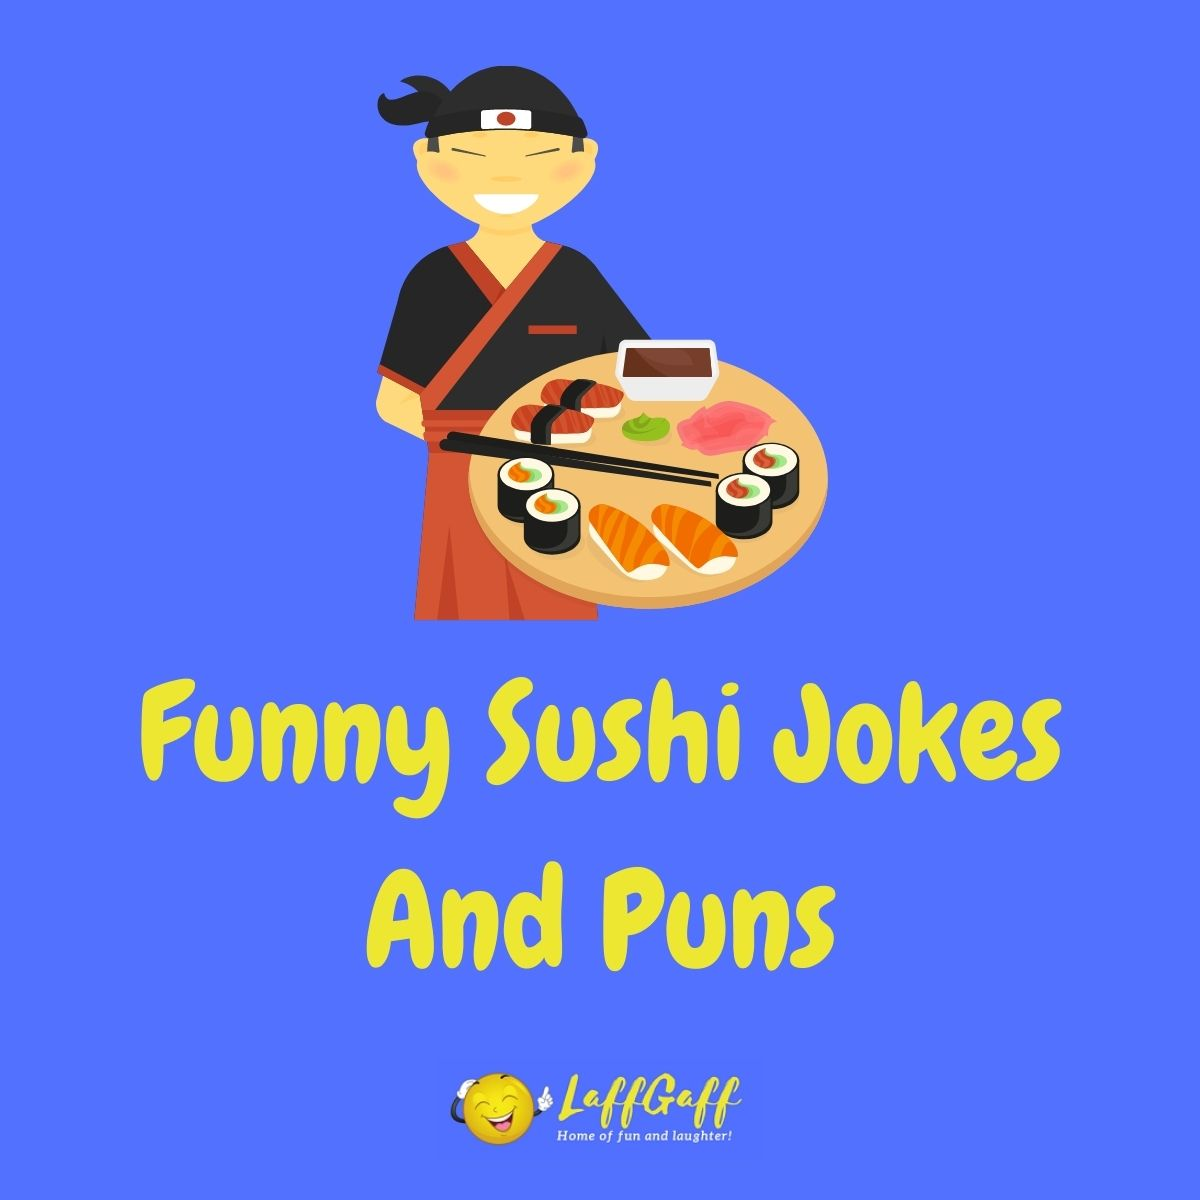 Featured image for a page of funny sushi jokes and puns.